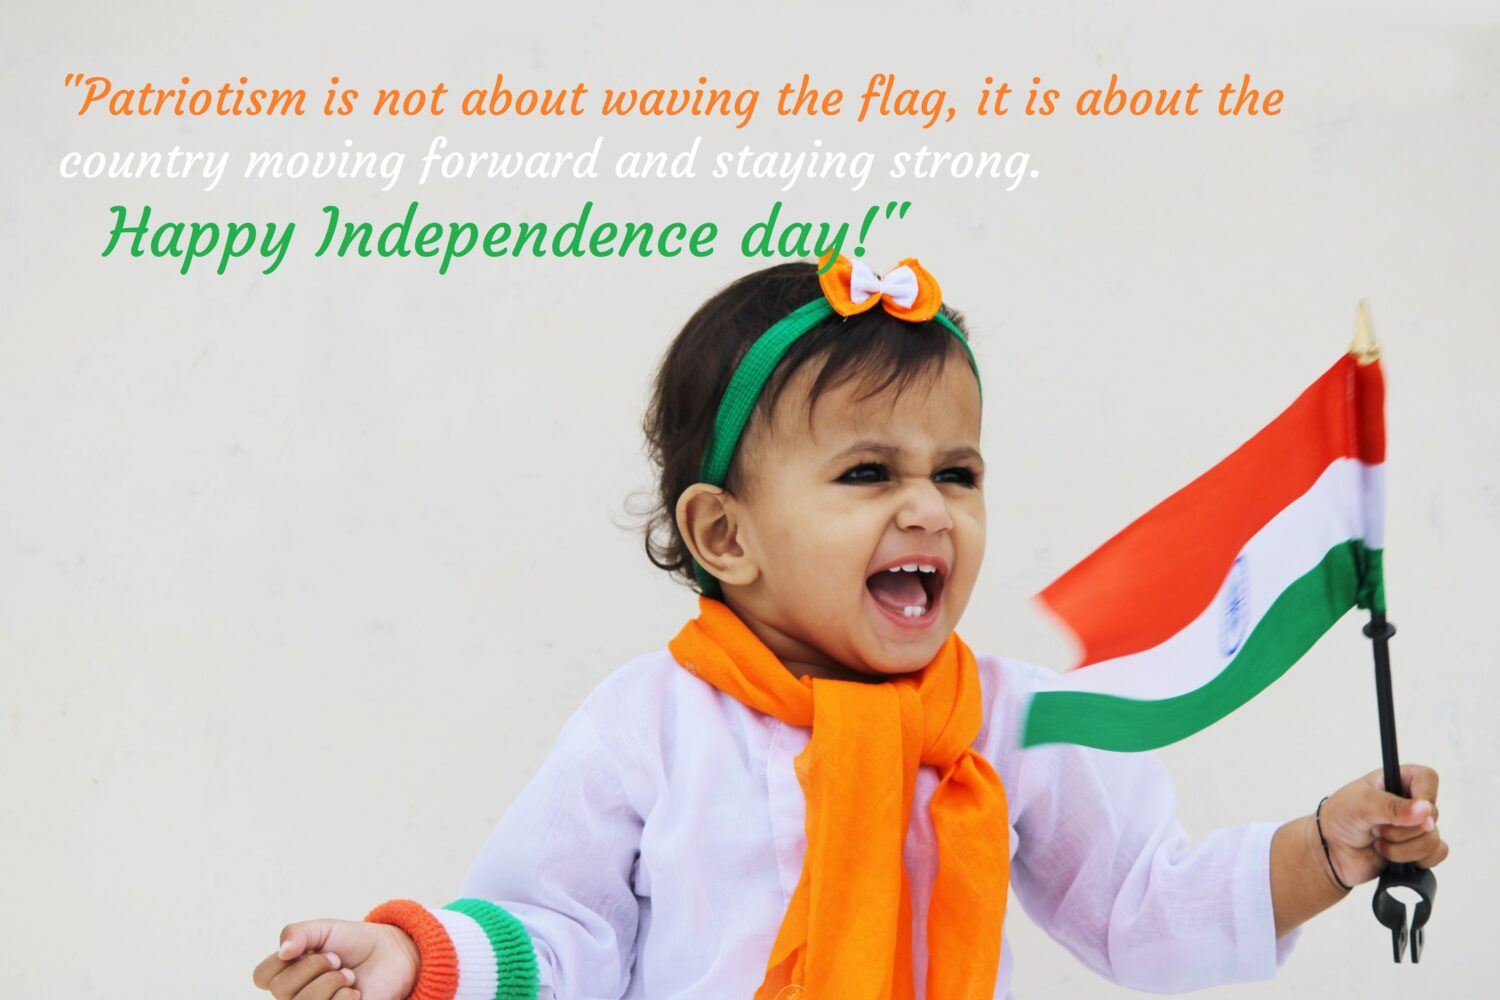 Girl waving flag, Independence day.